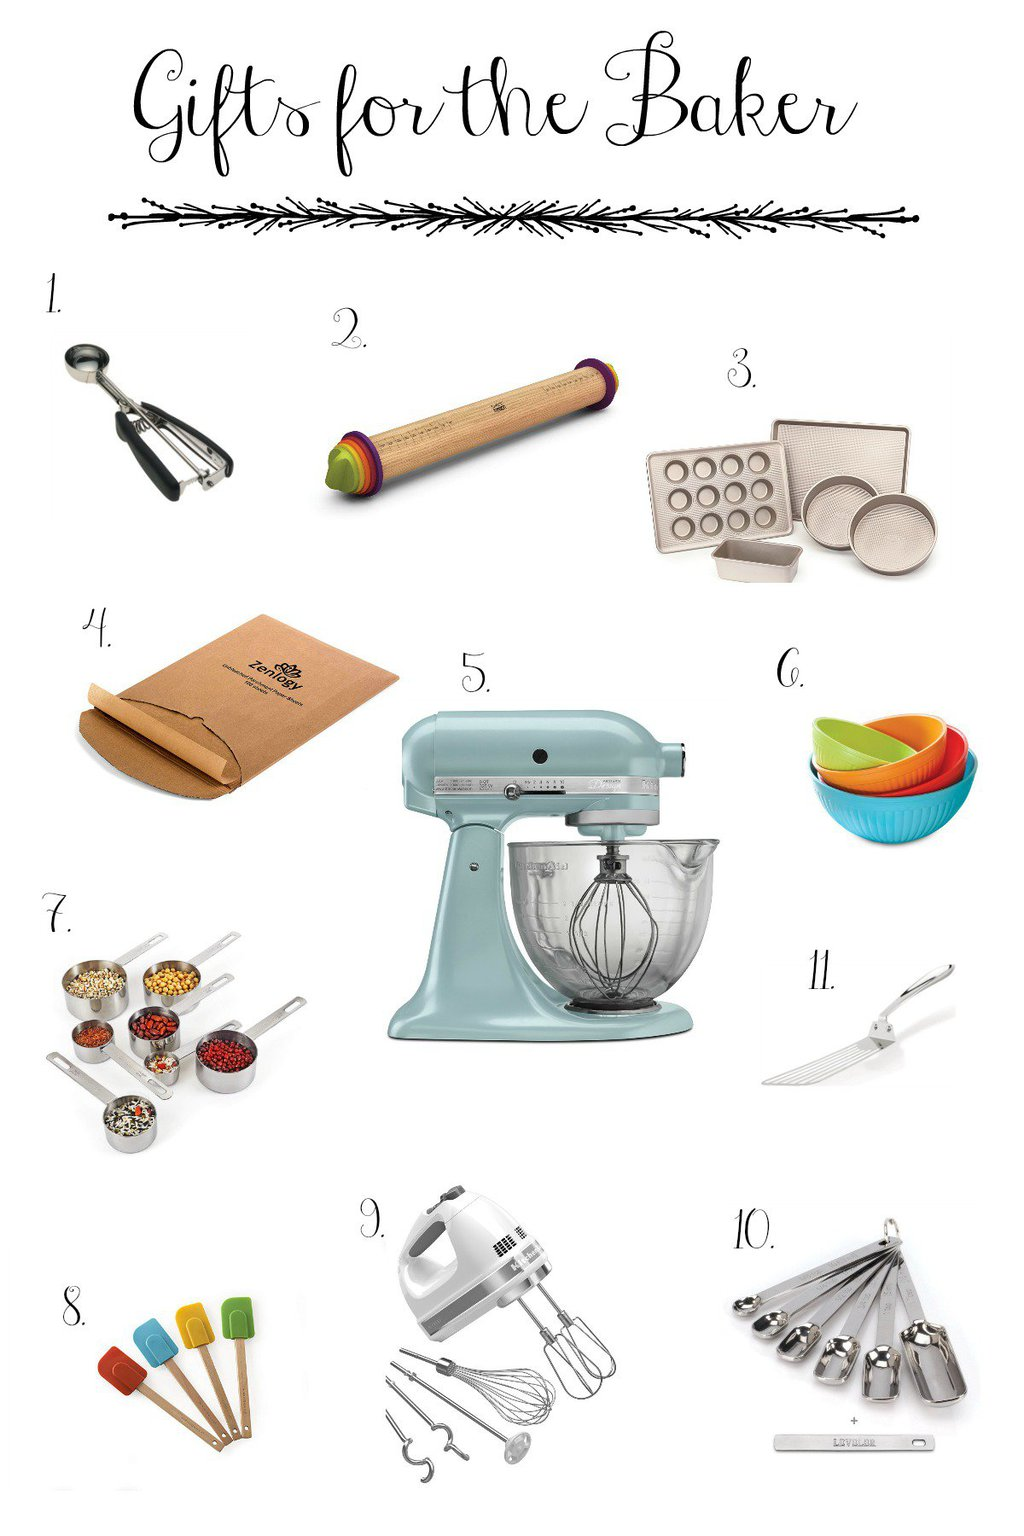 Images of our gift guides for the baker